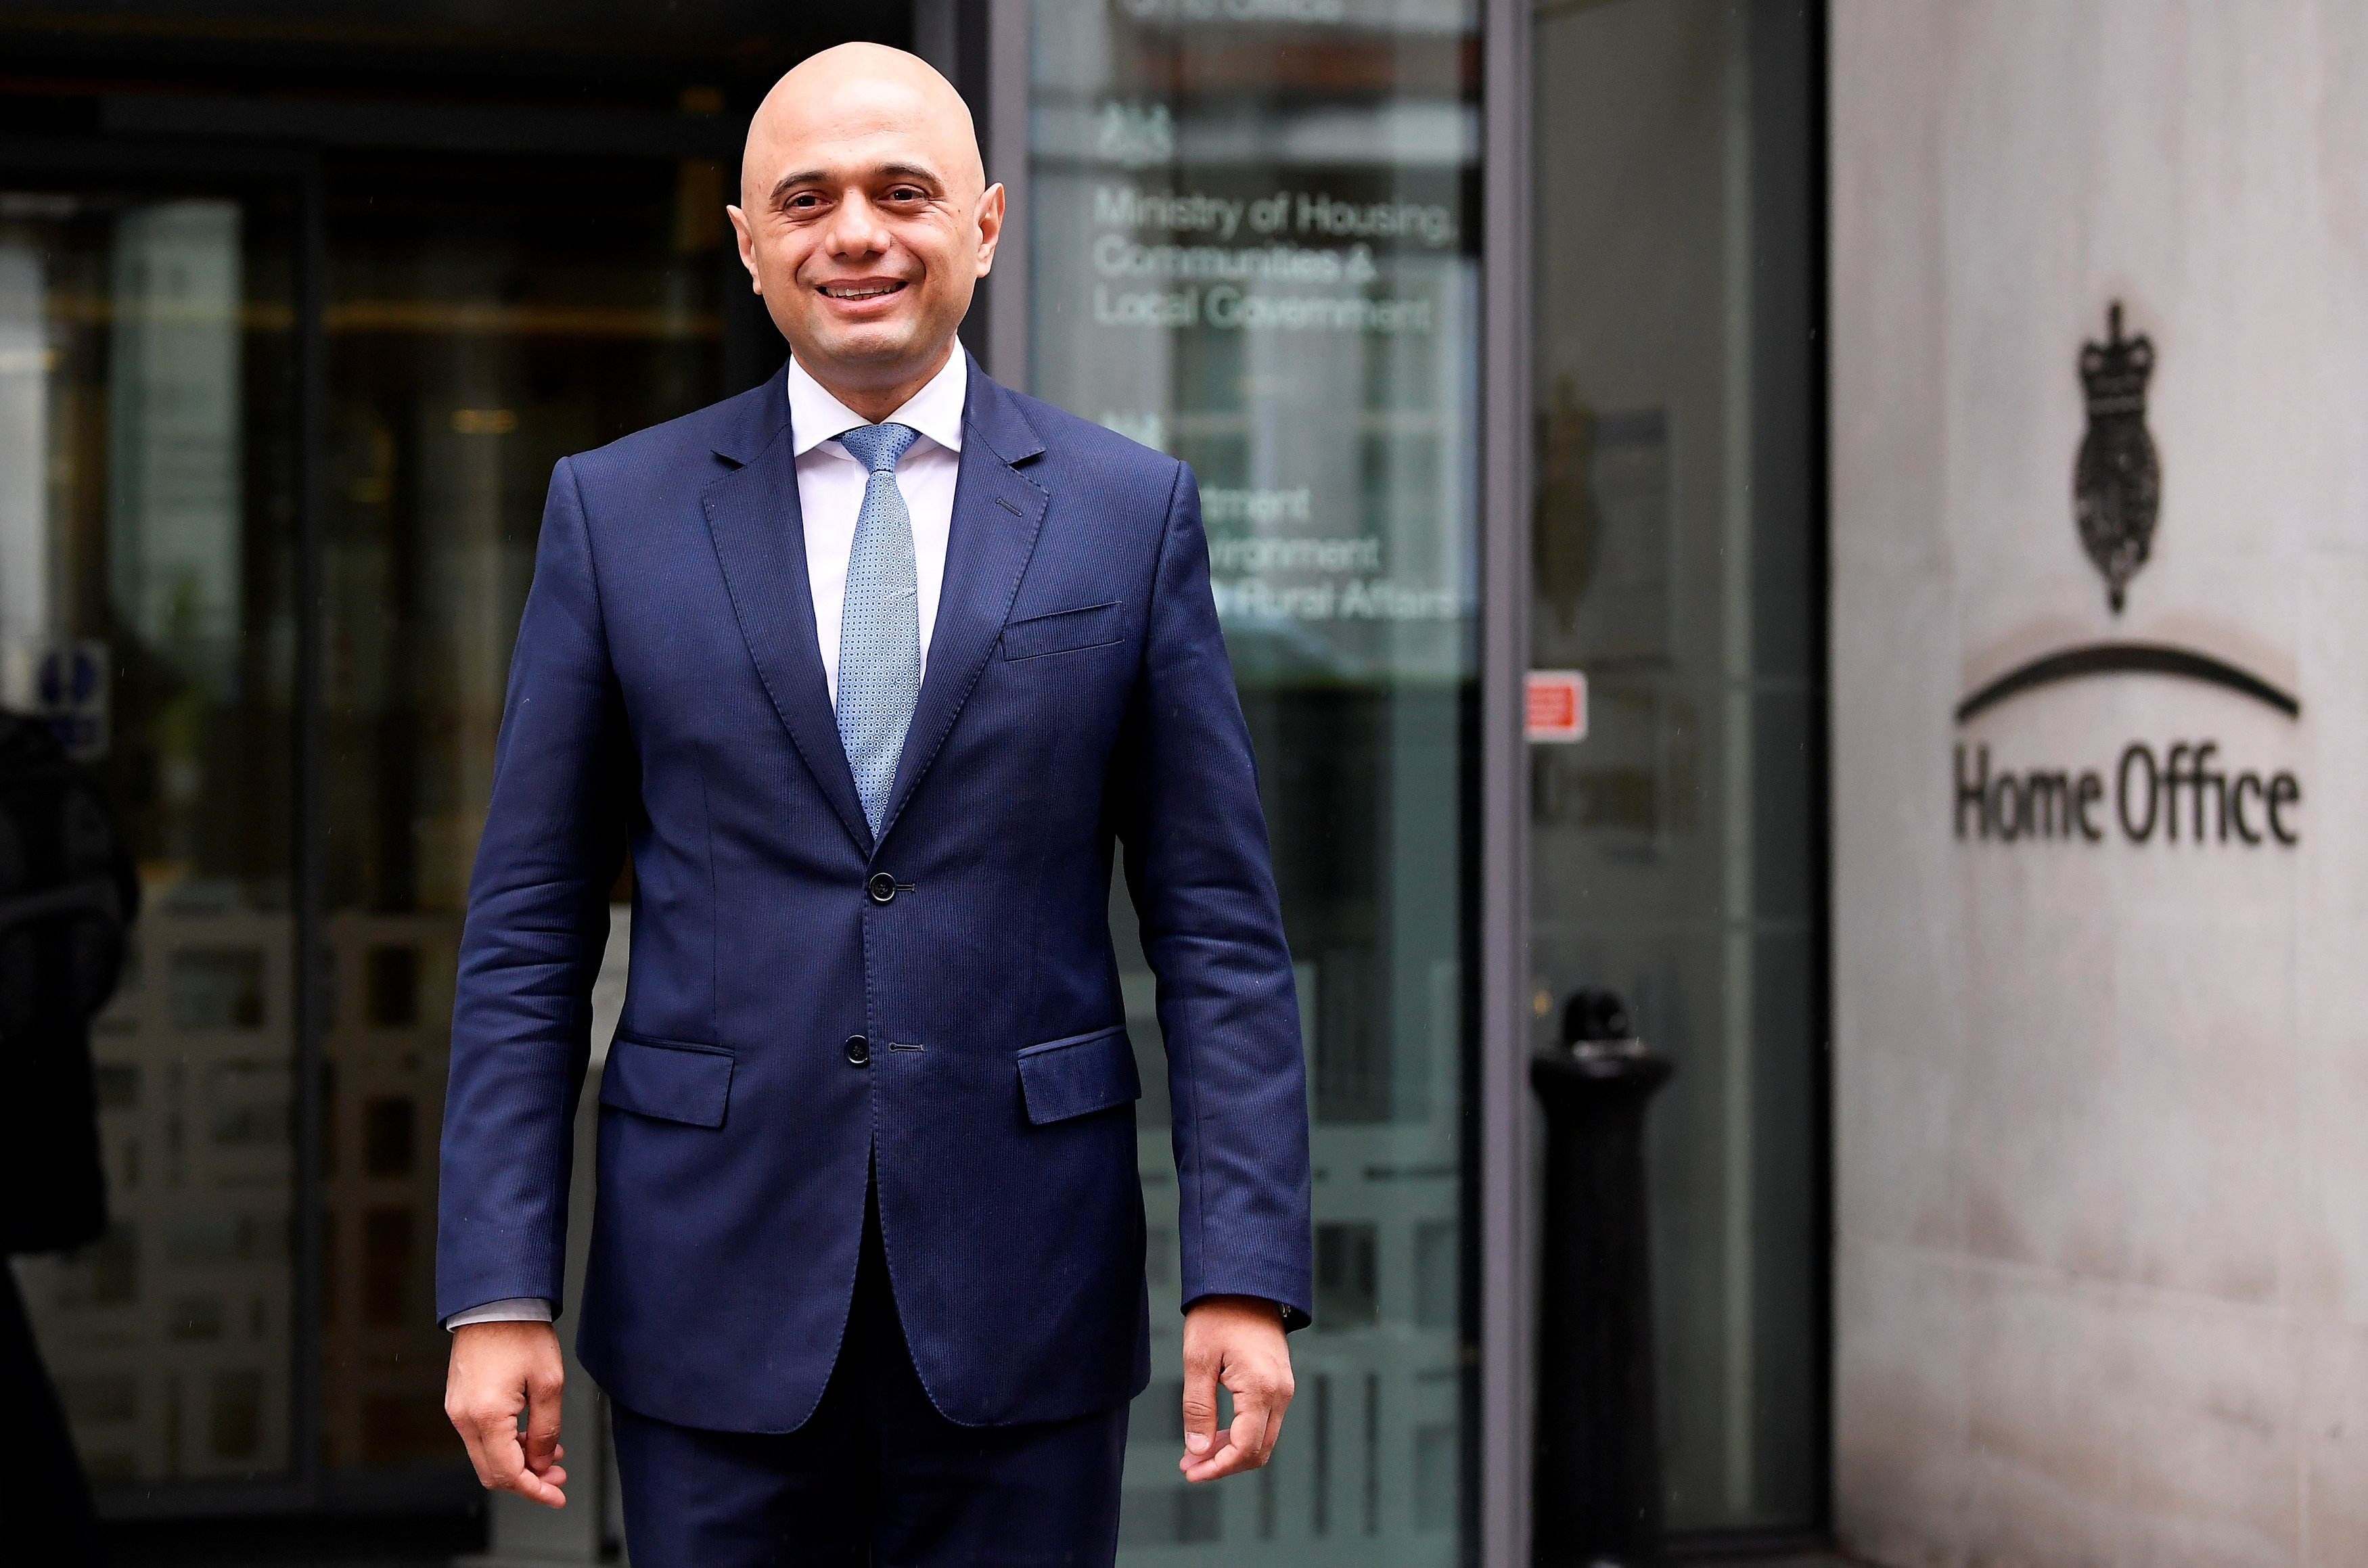 Javid Challenges Anti-Immigration Rhetoric & 'Zionist' Conspiracy Theories in Counter-Extremism Speech